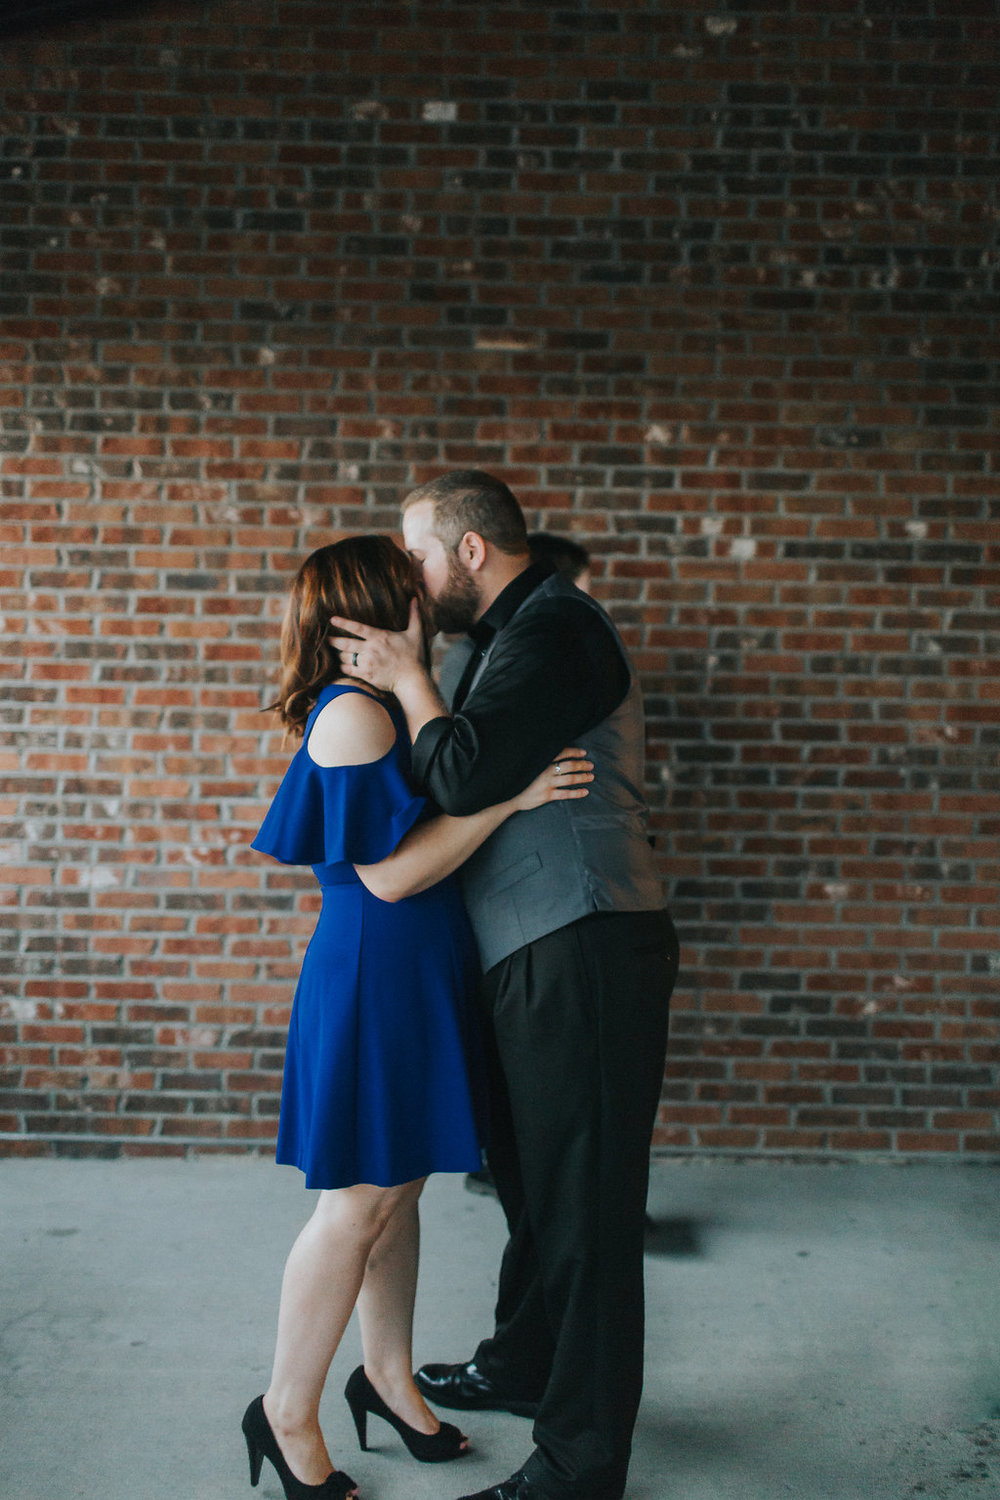 Tampa Elopement Coppertail Brewery Ybor Wedding Photographer_027.jpg